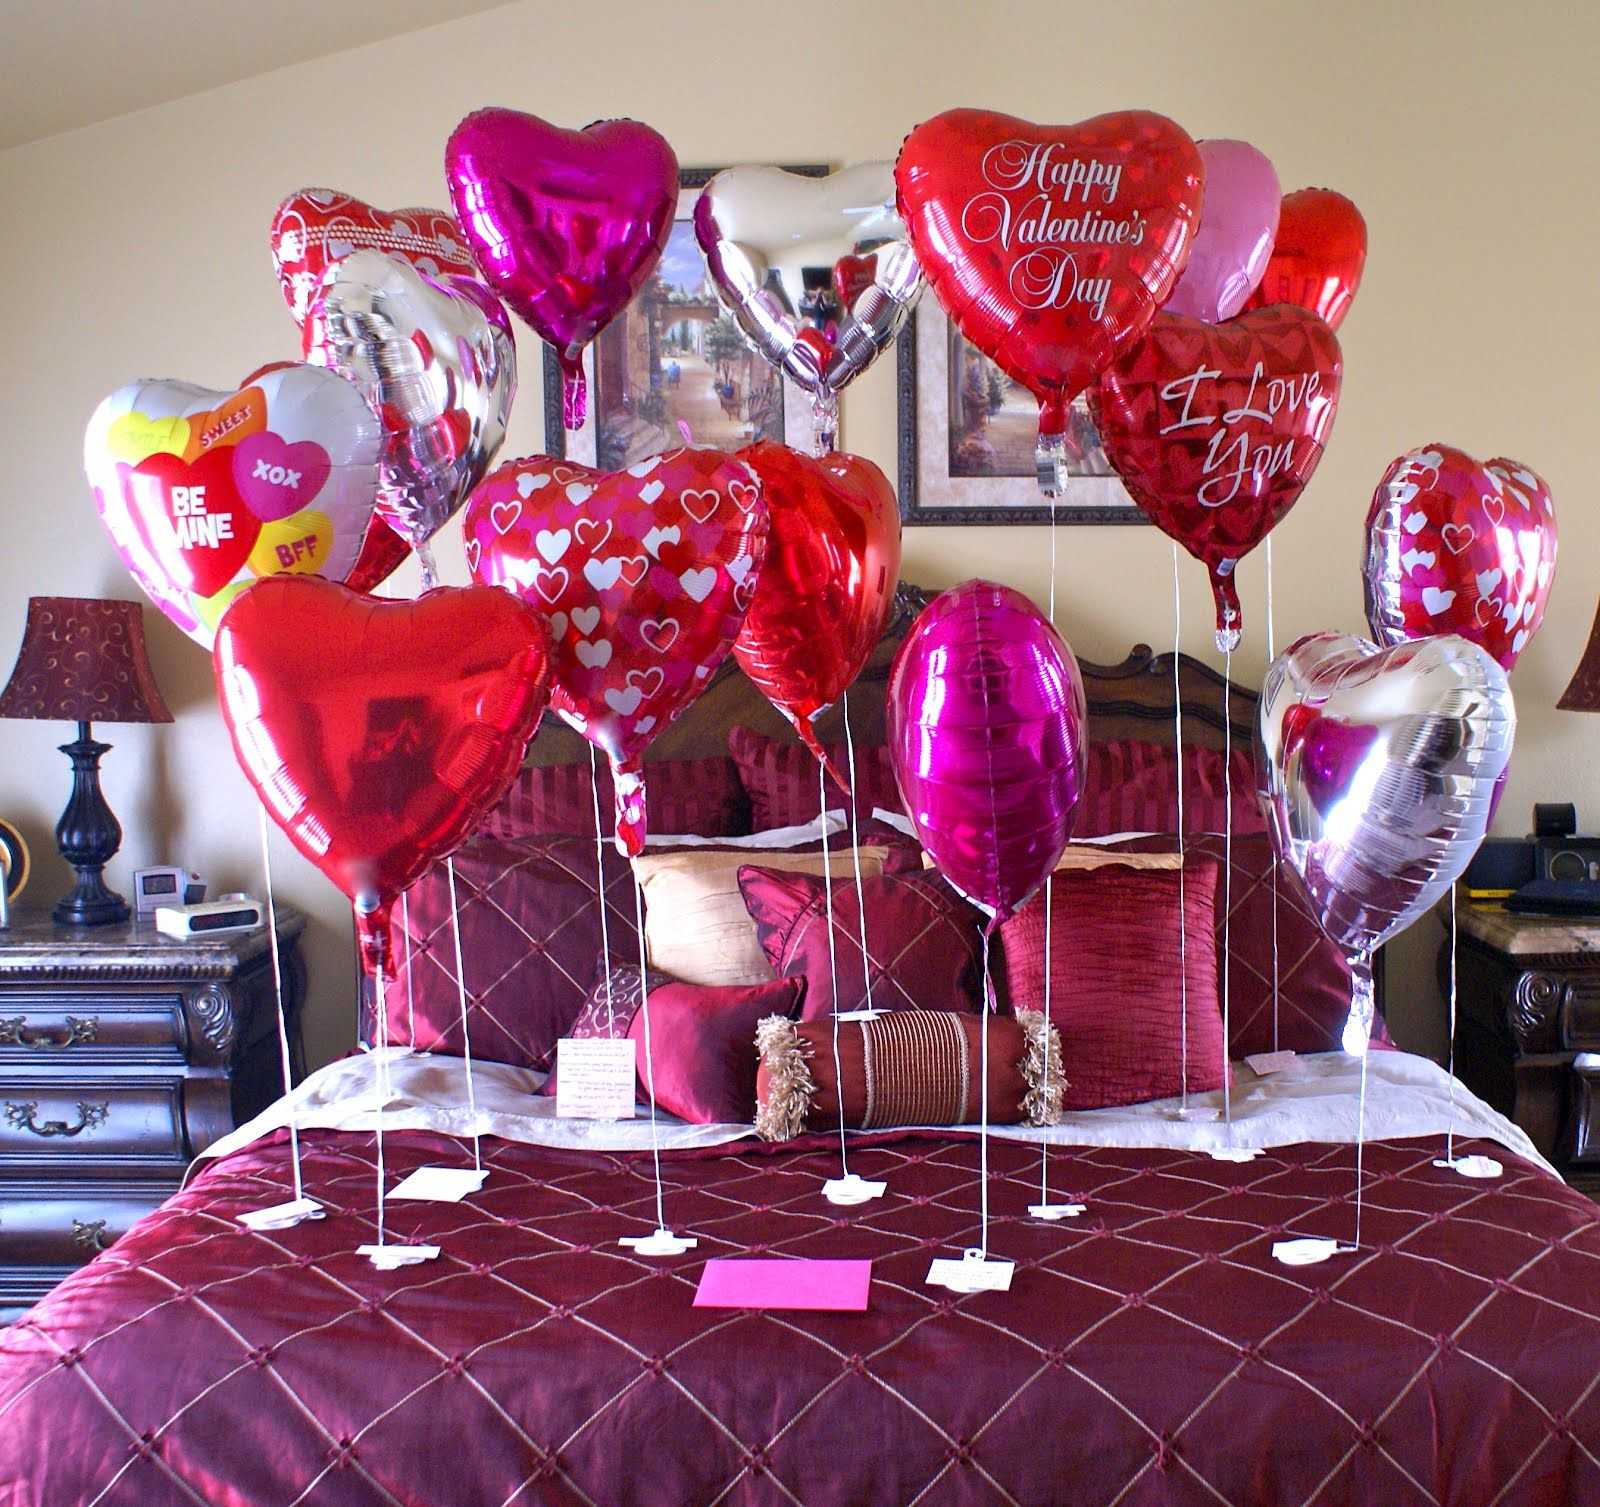 Get Creative on Valentines' Day | Creative and Craft